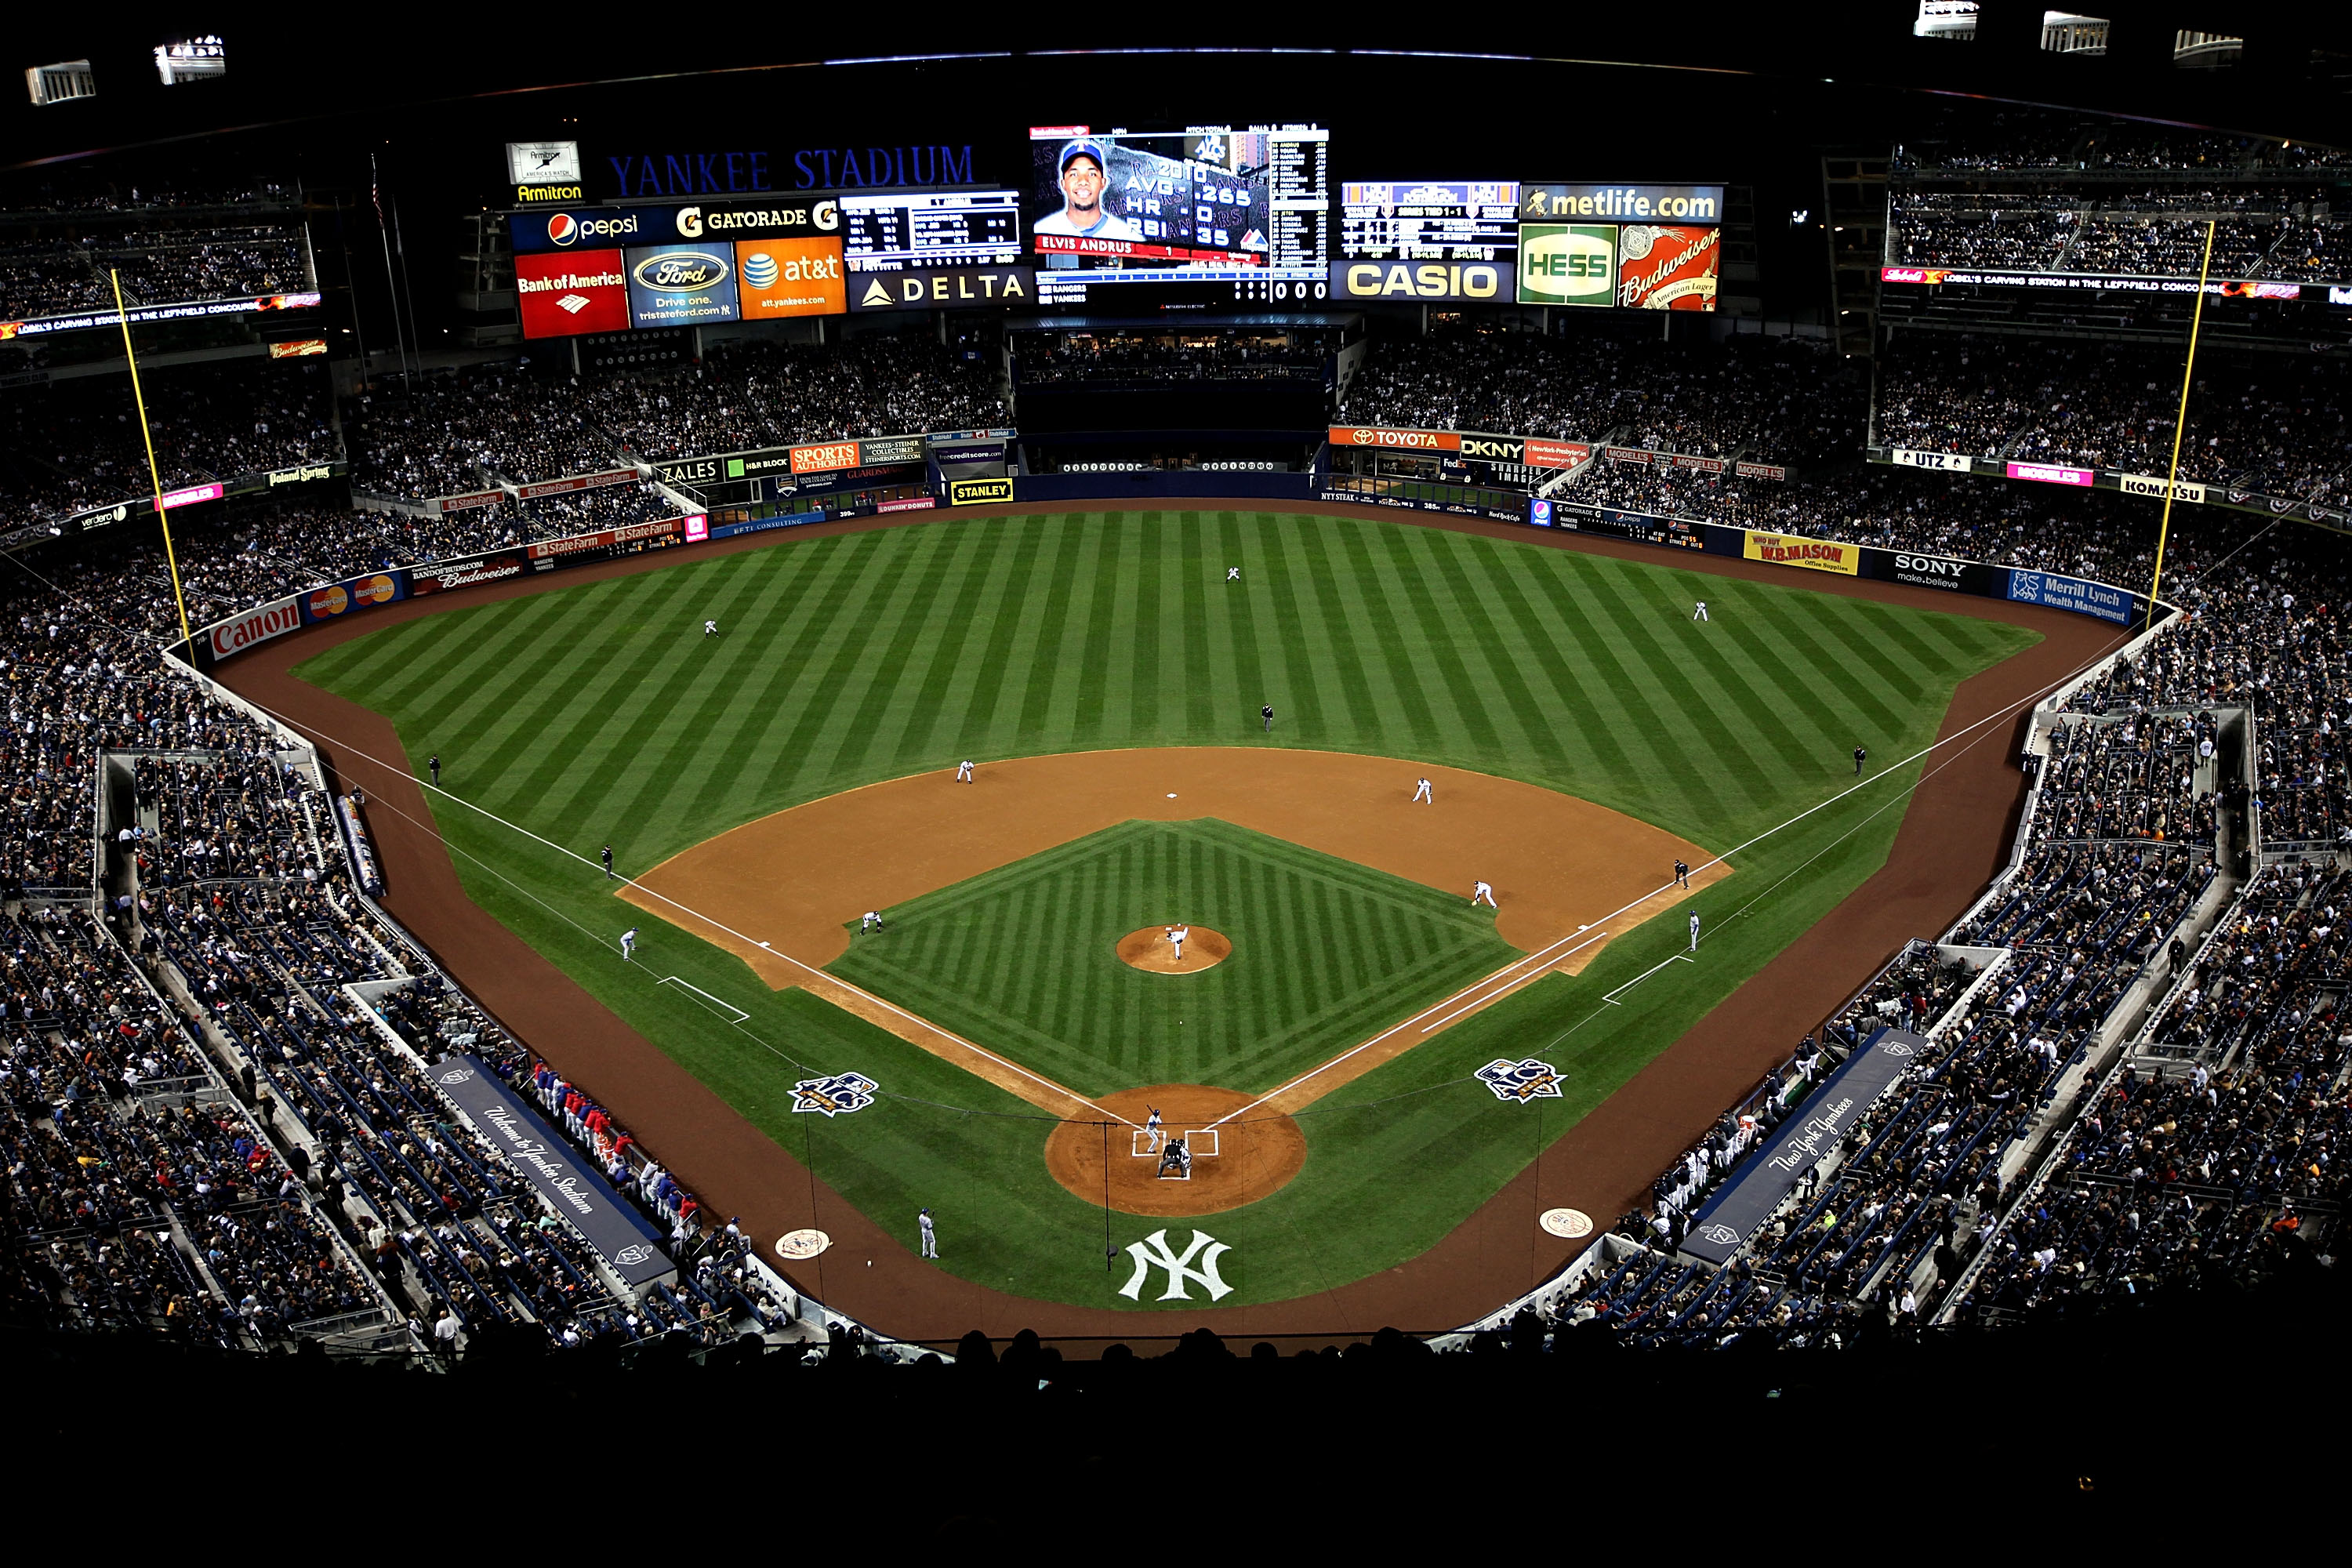 NEW YORK YANKEES baseball mlb j wallpaper 3000x2000 158228 3000x2000